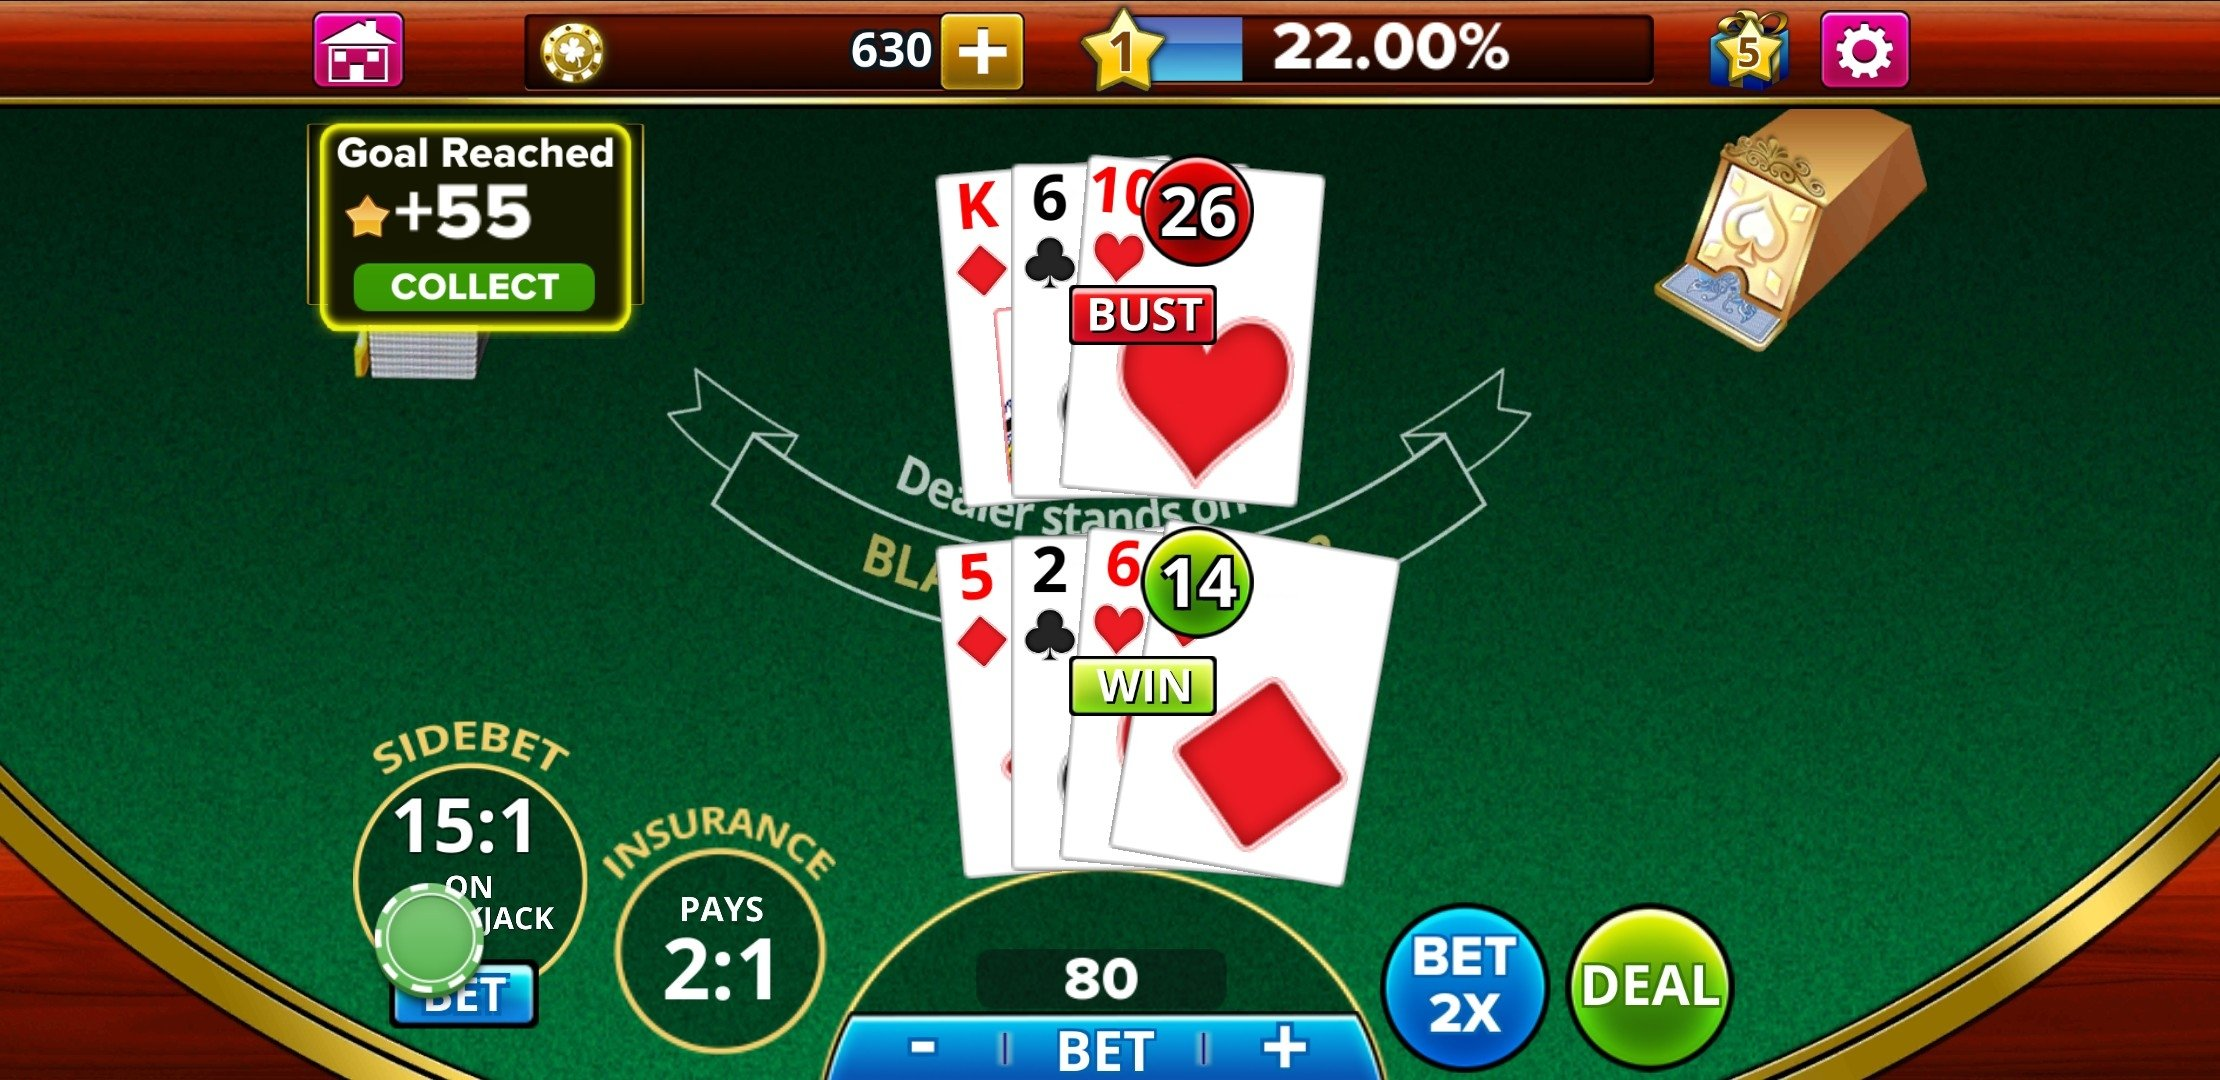 Blackjack 21 Android image 5